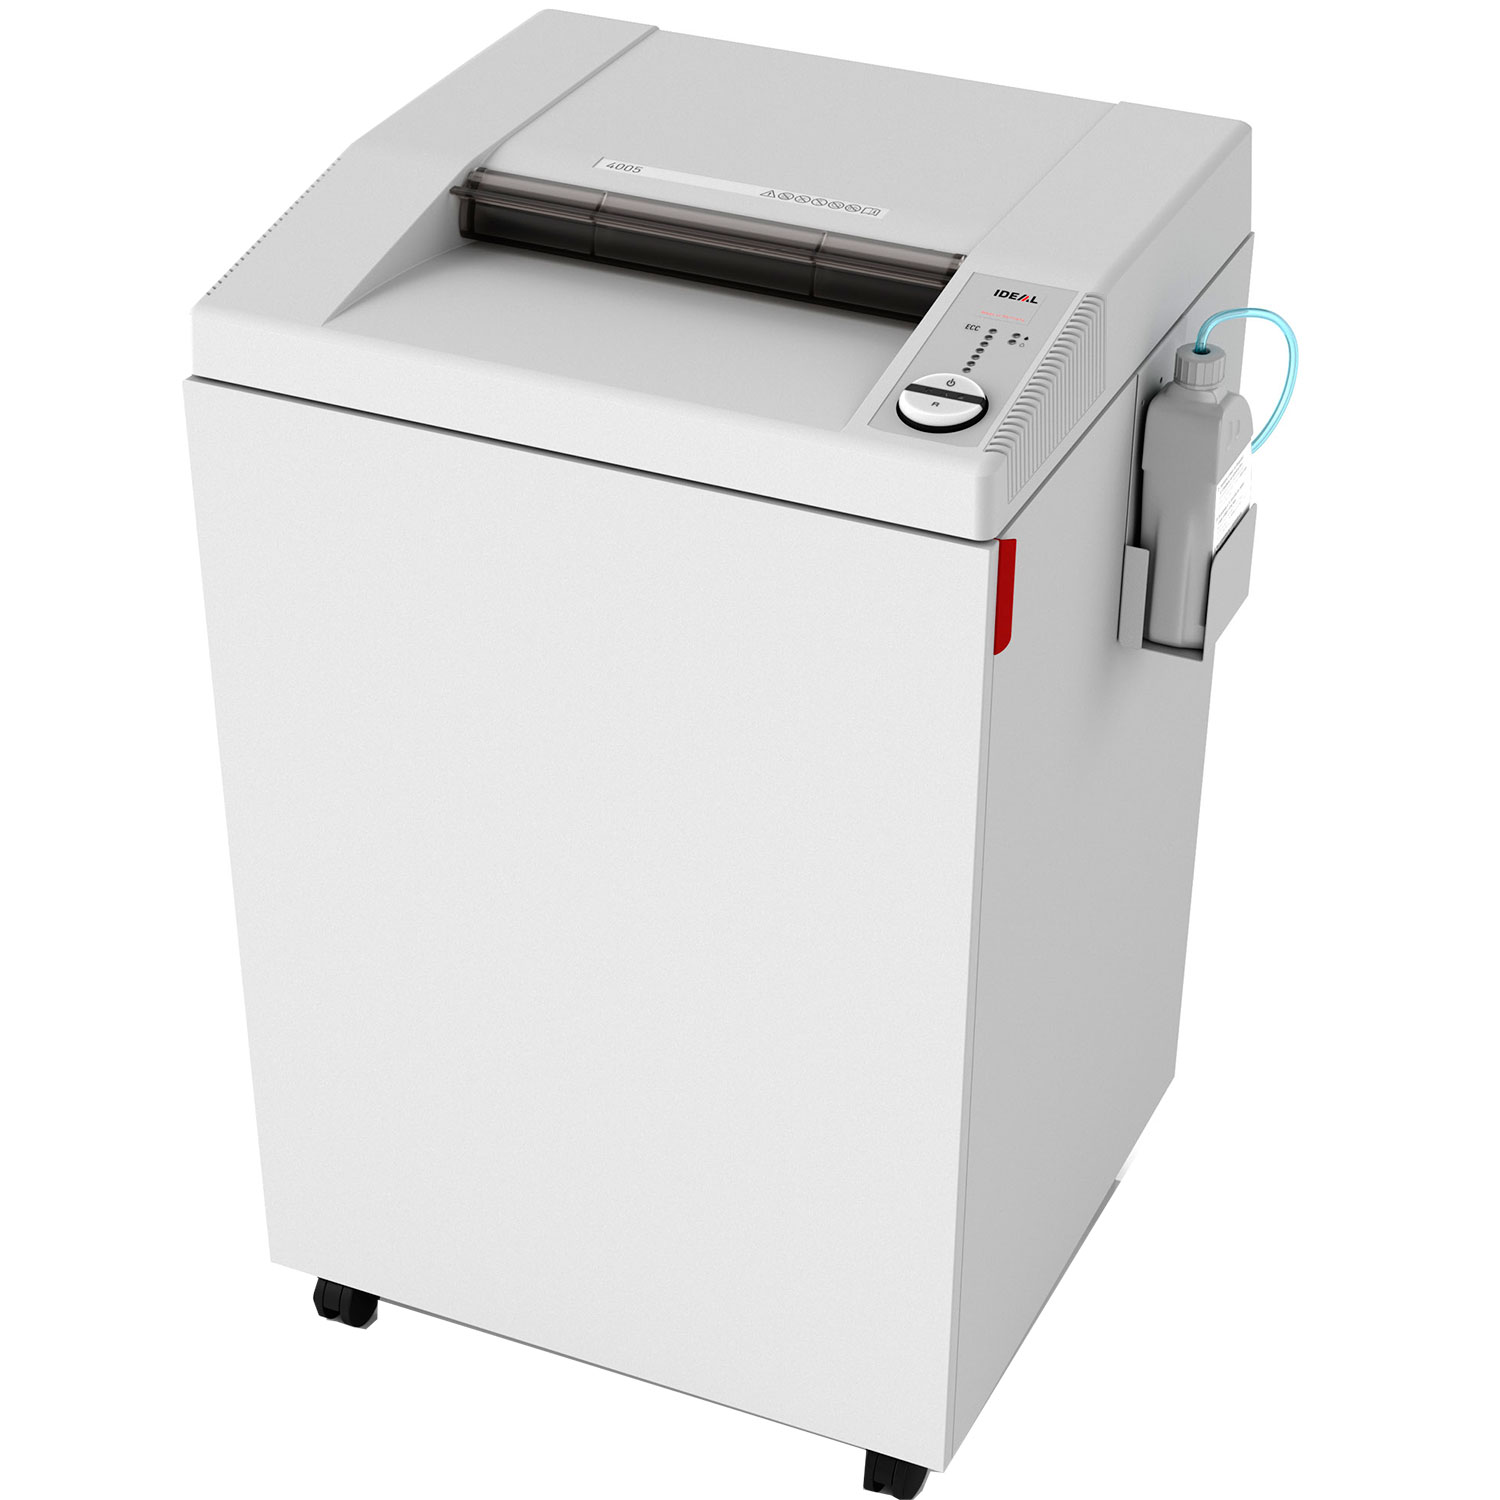 IDEAL 4005 Cross-Cut 2 x 15mm Paper Shredder